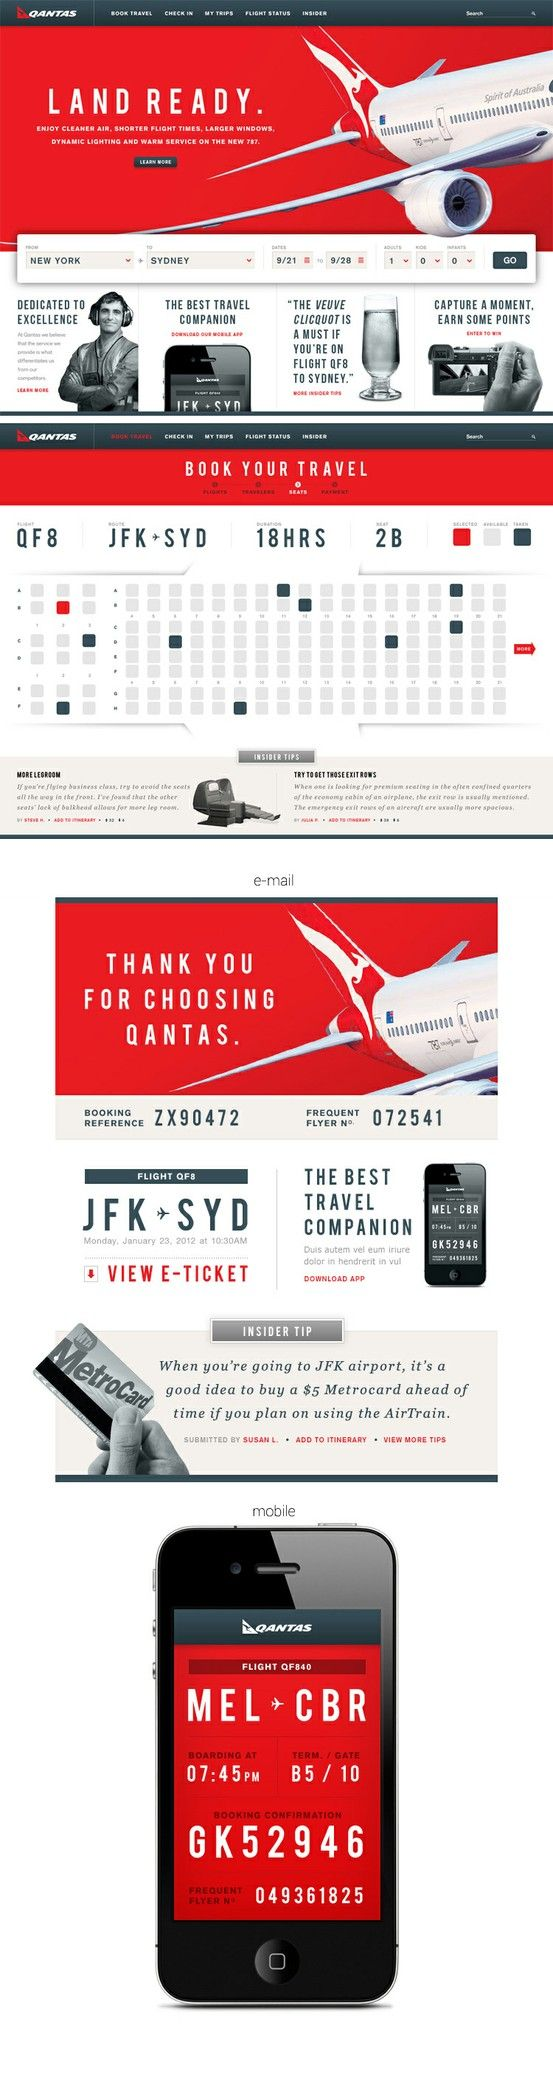 Nice web design—reliance on the brand color is great—and then the presentation of seats is also very intuitive.